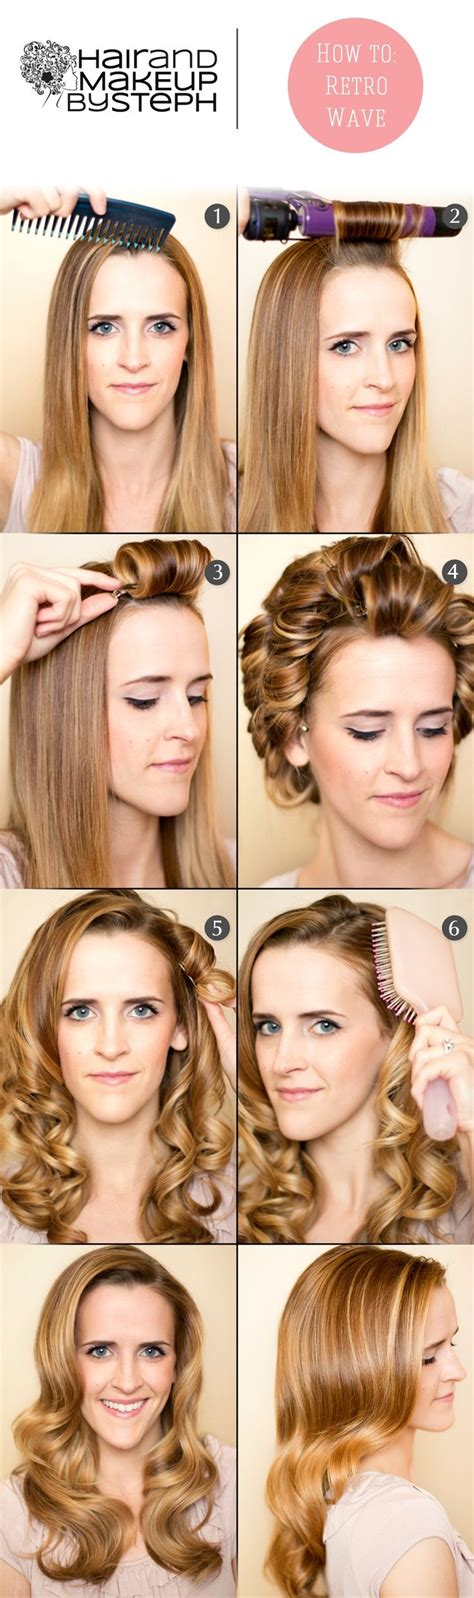 how to do vintage hairstyles 20 stylish retro wavy hairstyle tutorials and hair looks